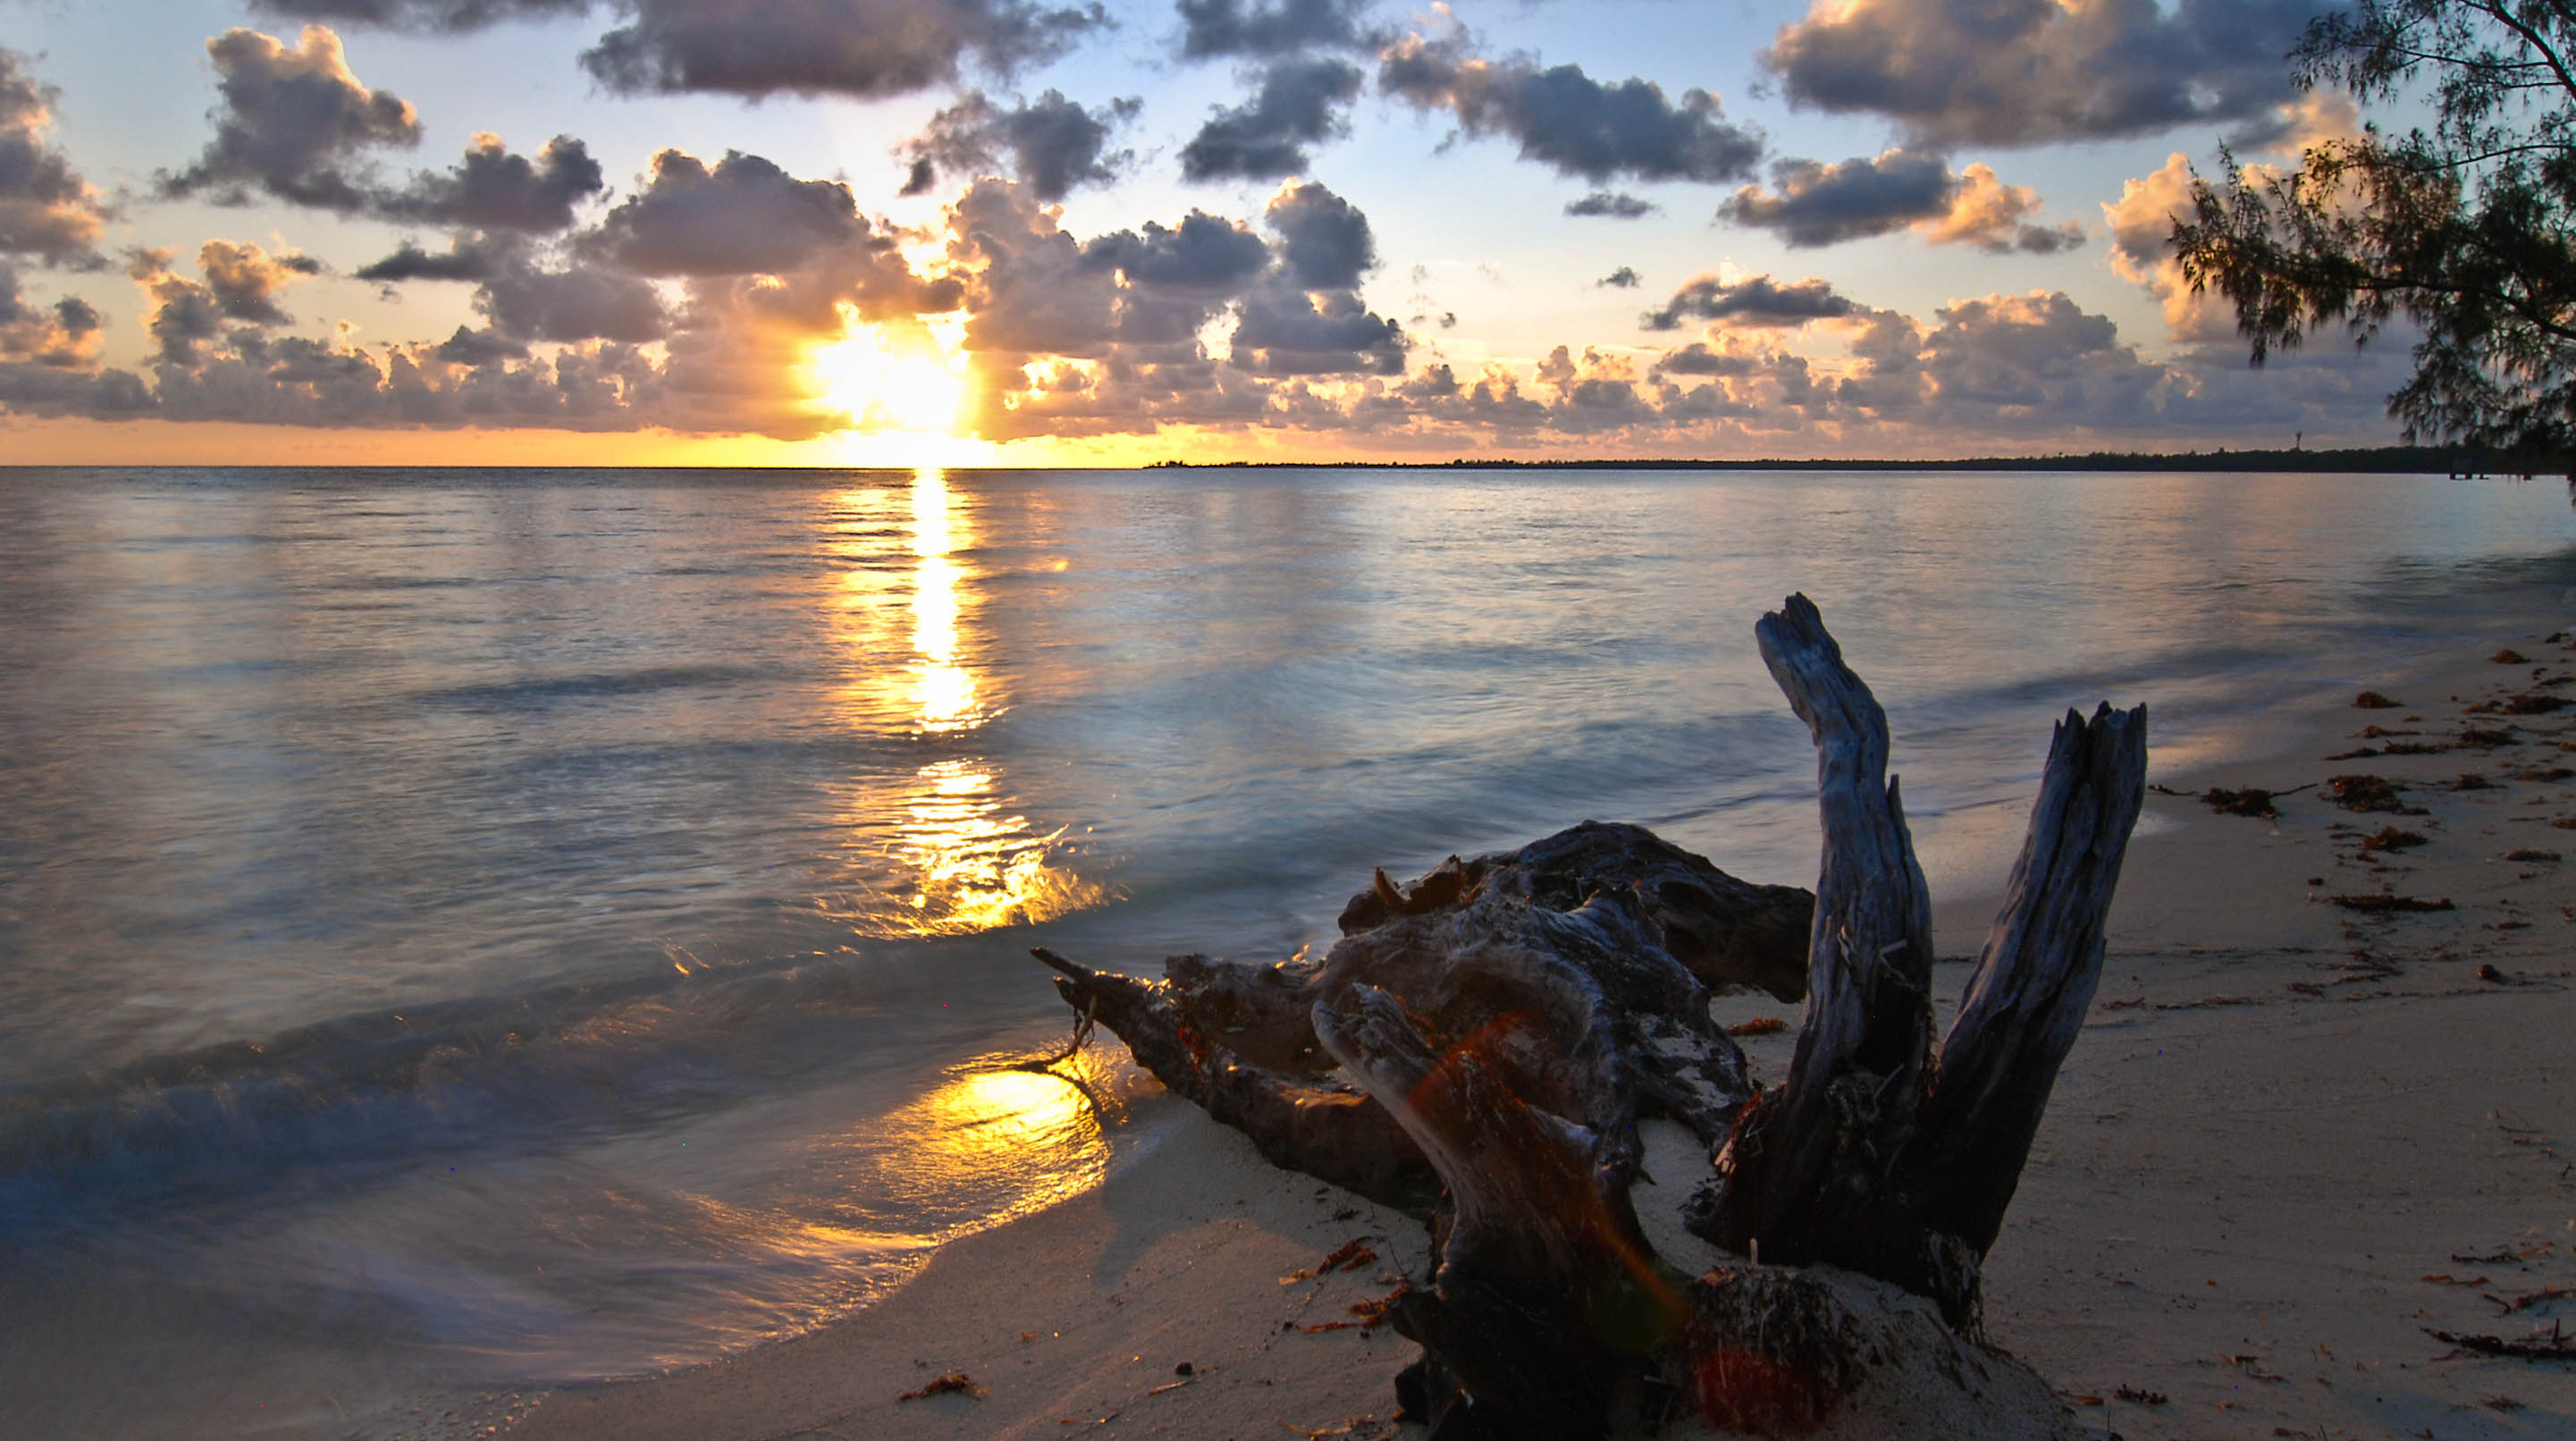 The Bahamas Sunrise Sunset Times